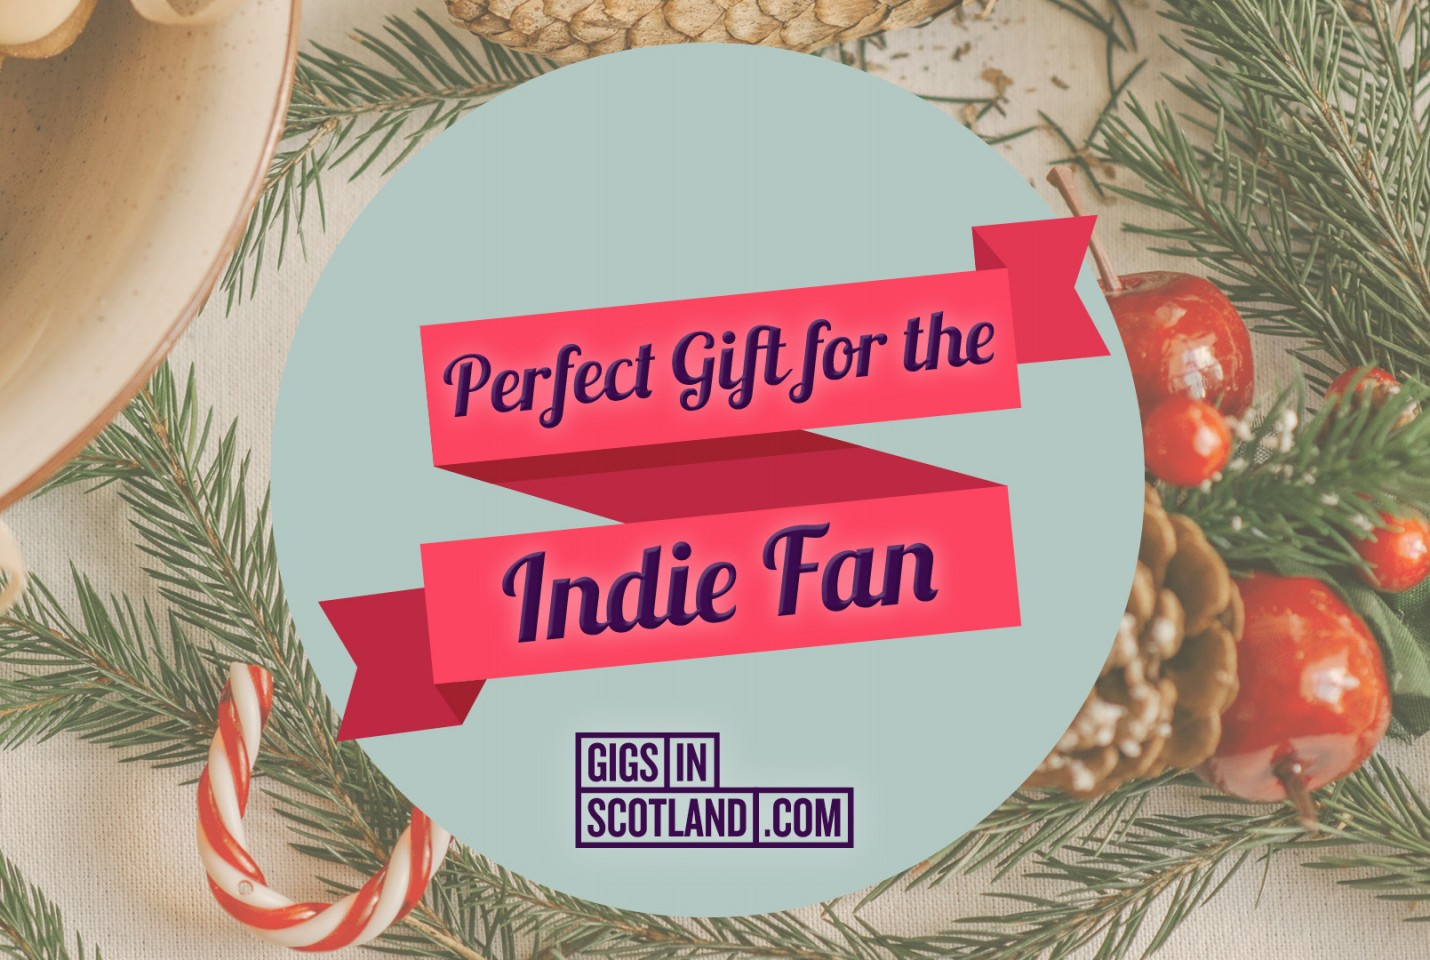 Indie Fan - Christmas Gift Guide 2020